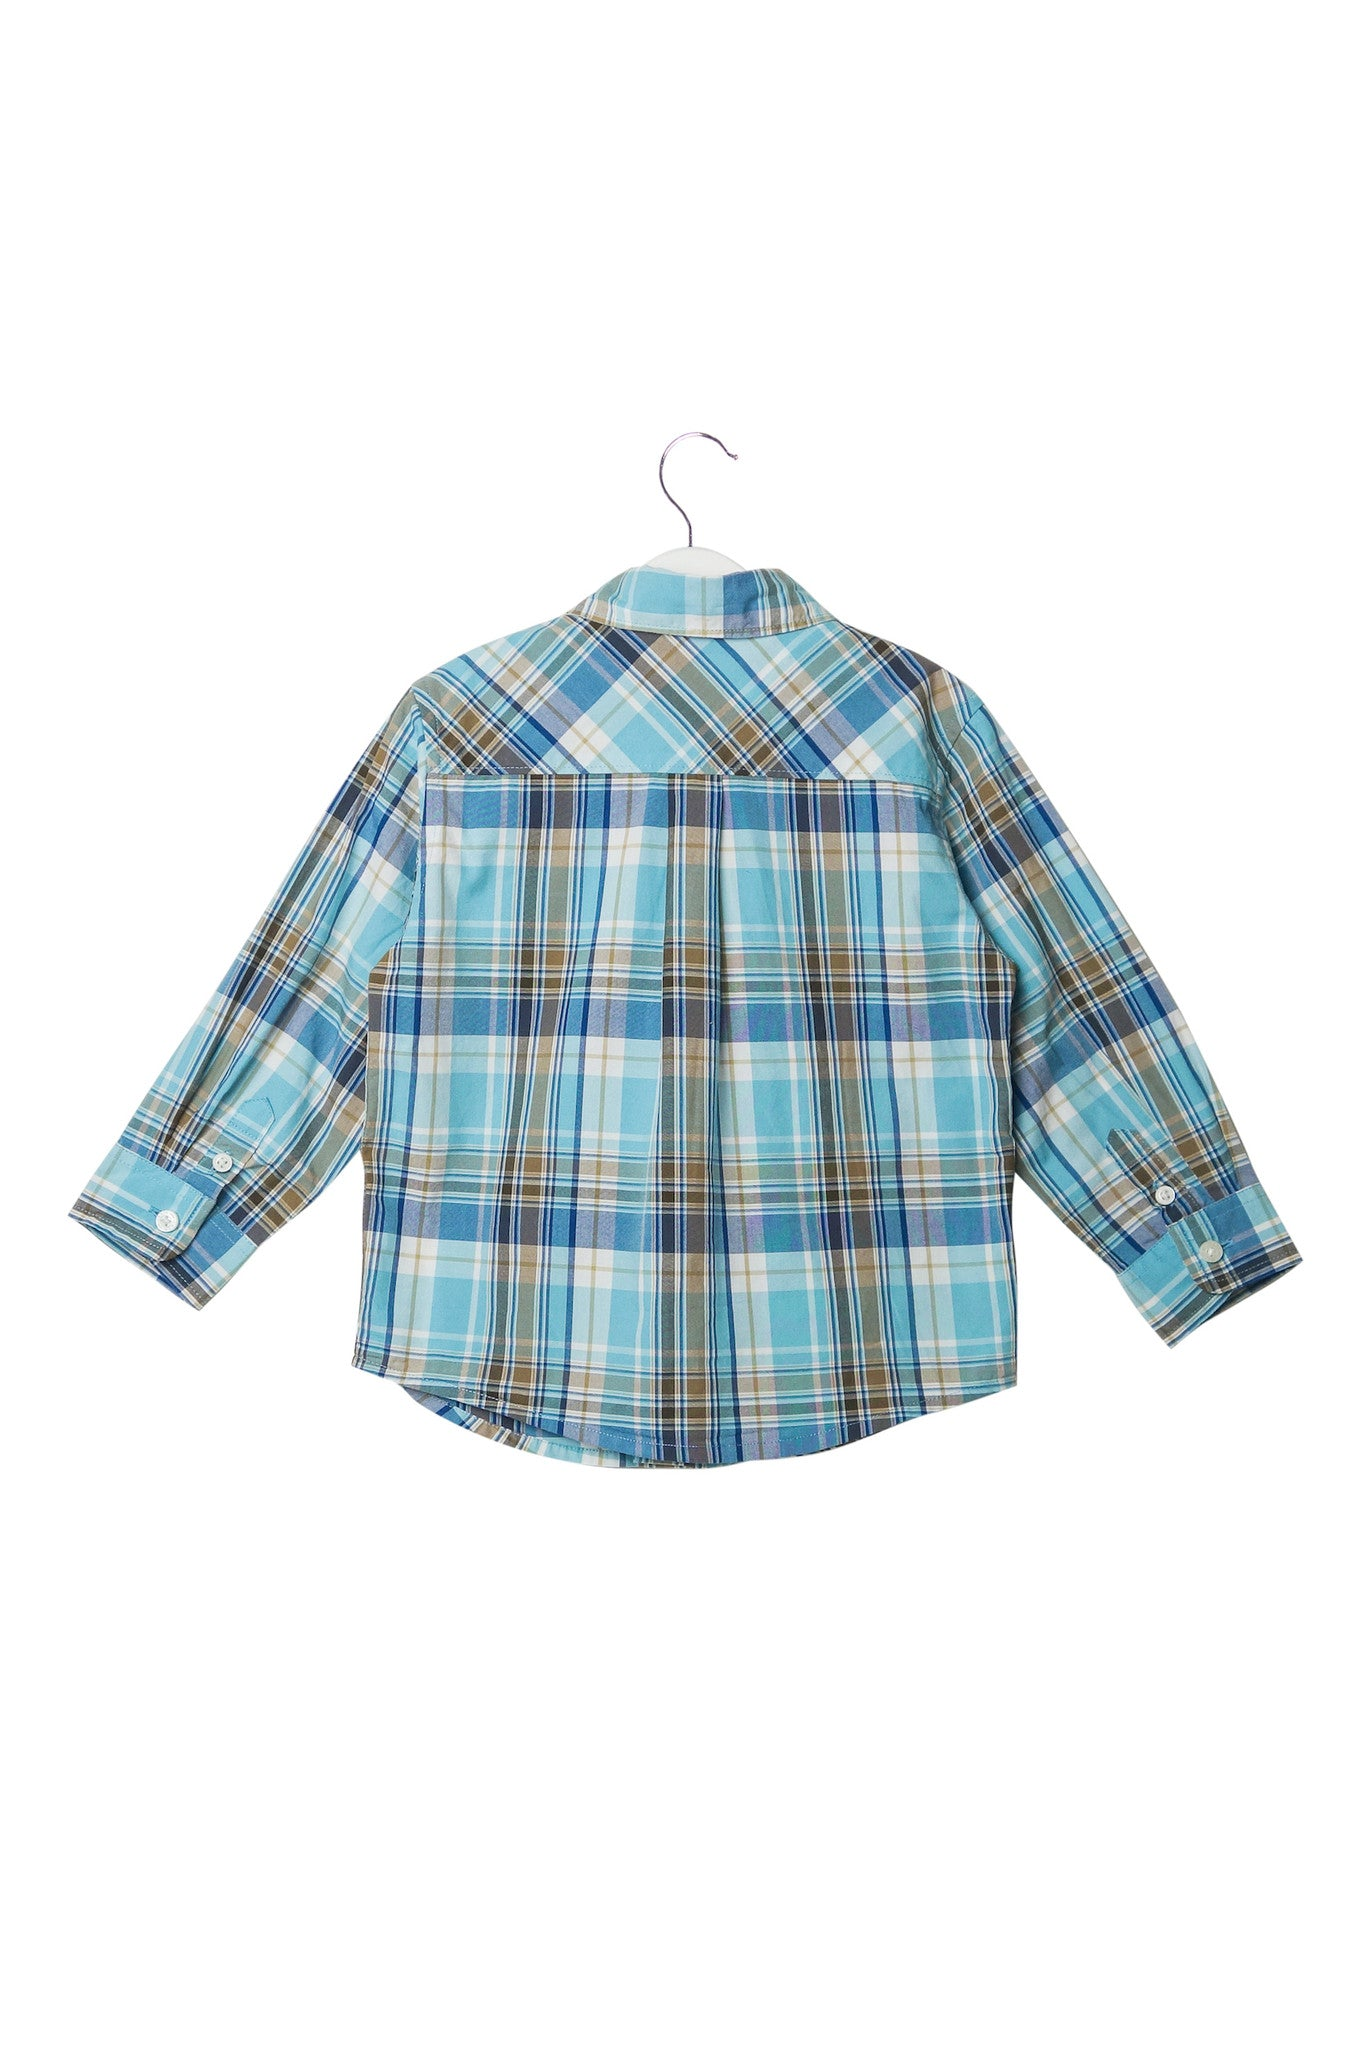 10002951 Janie & Jack Baby~Shirt 18-24M at Retykle